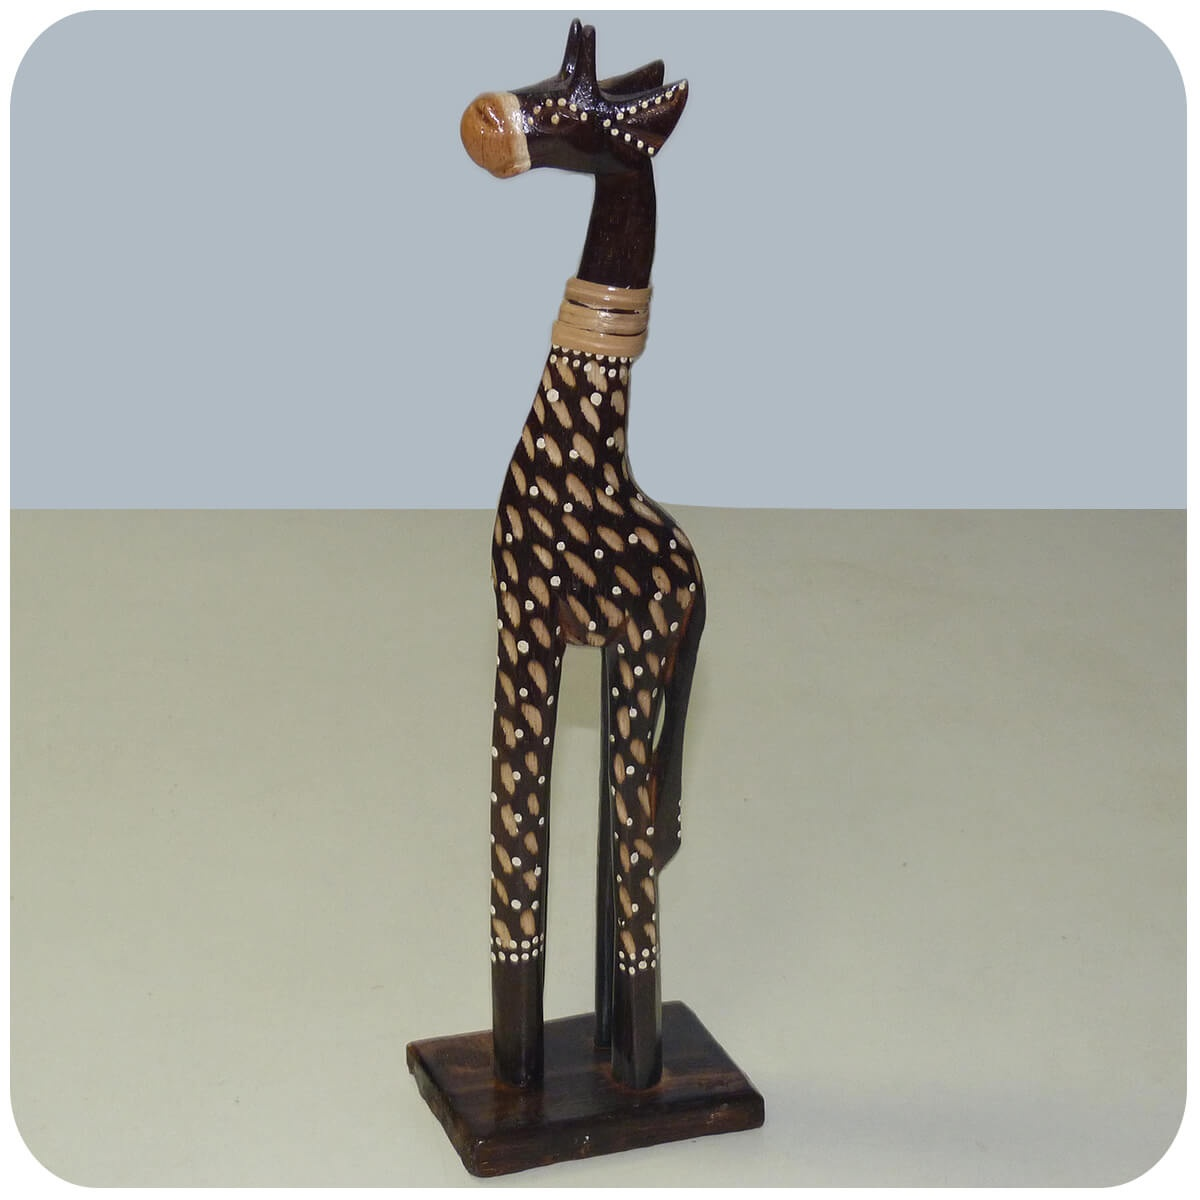 holz figur skulptur abstrakt holzfigur afrika handarbeit deko giraffe bemalt ebay. Black Bedroom Furniture Sets. Home Design Ideas